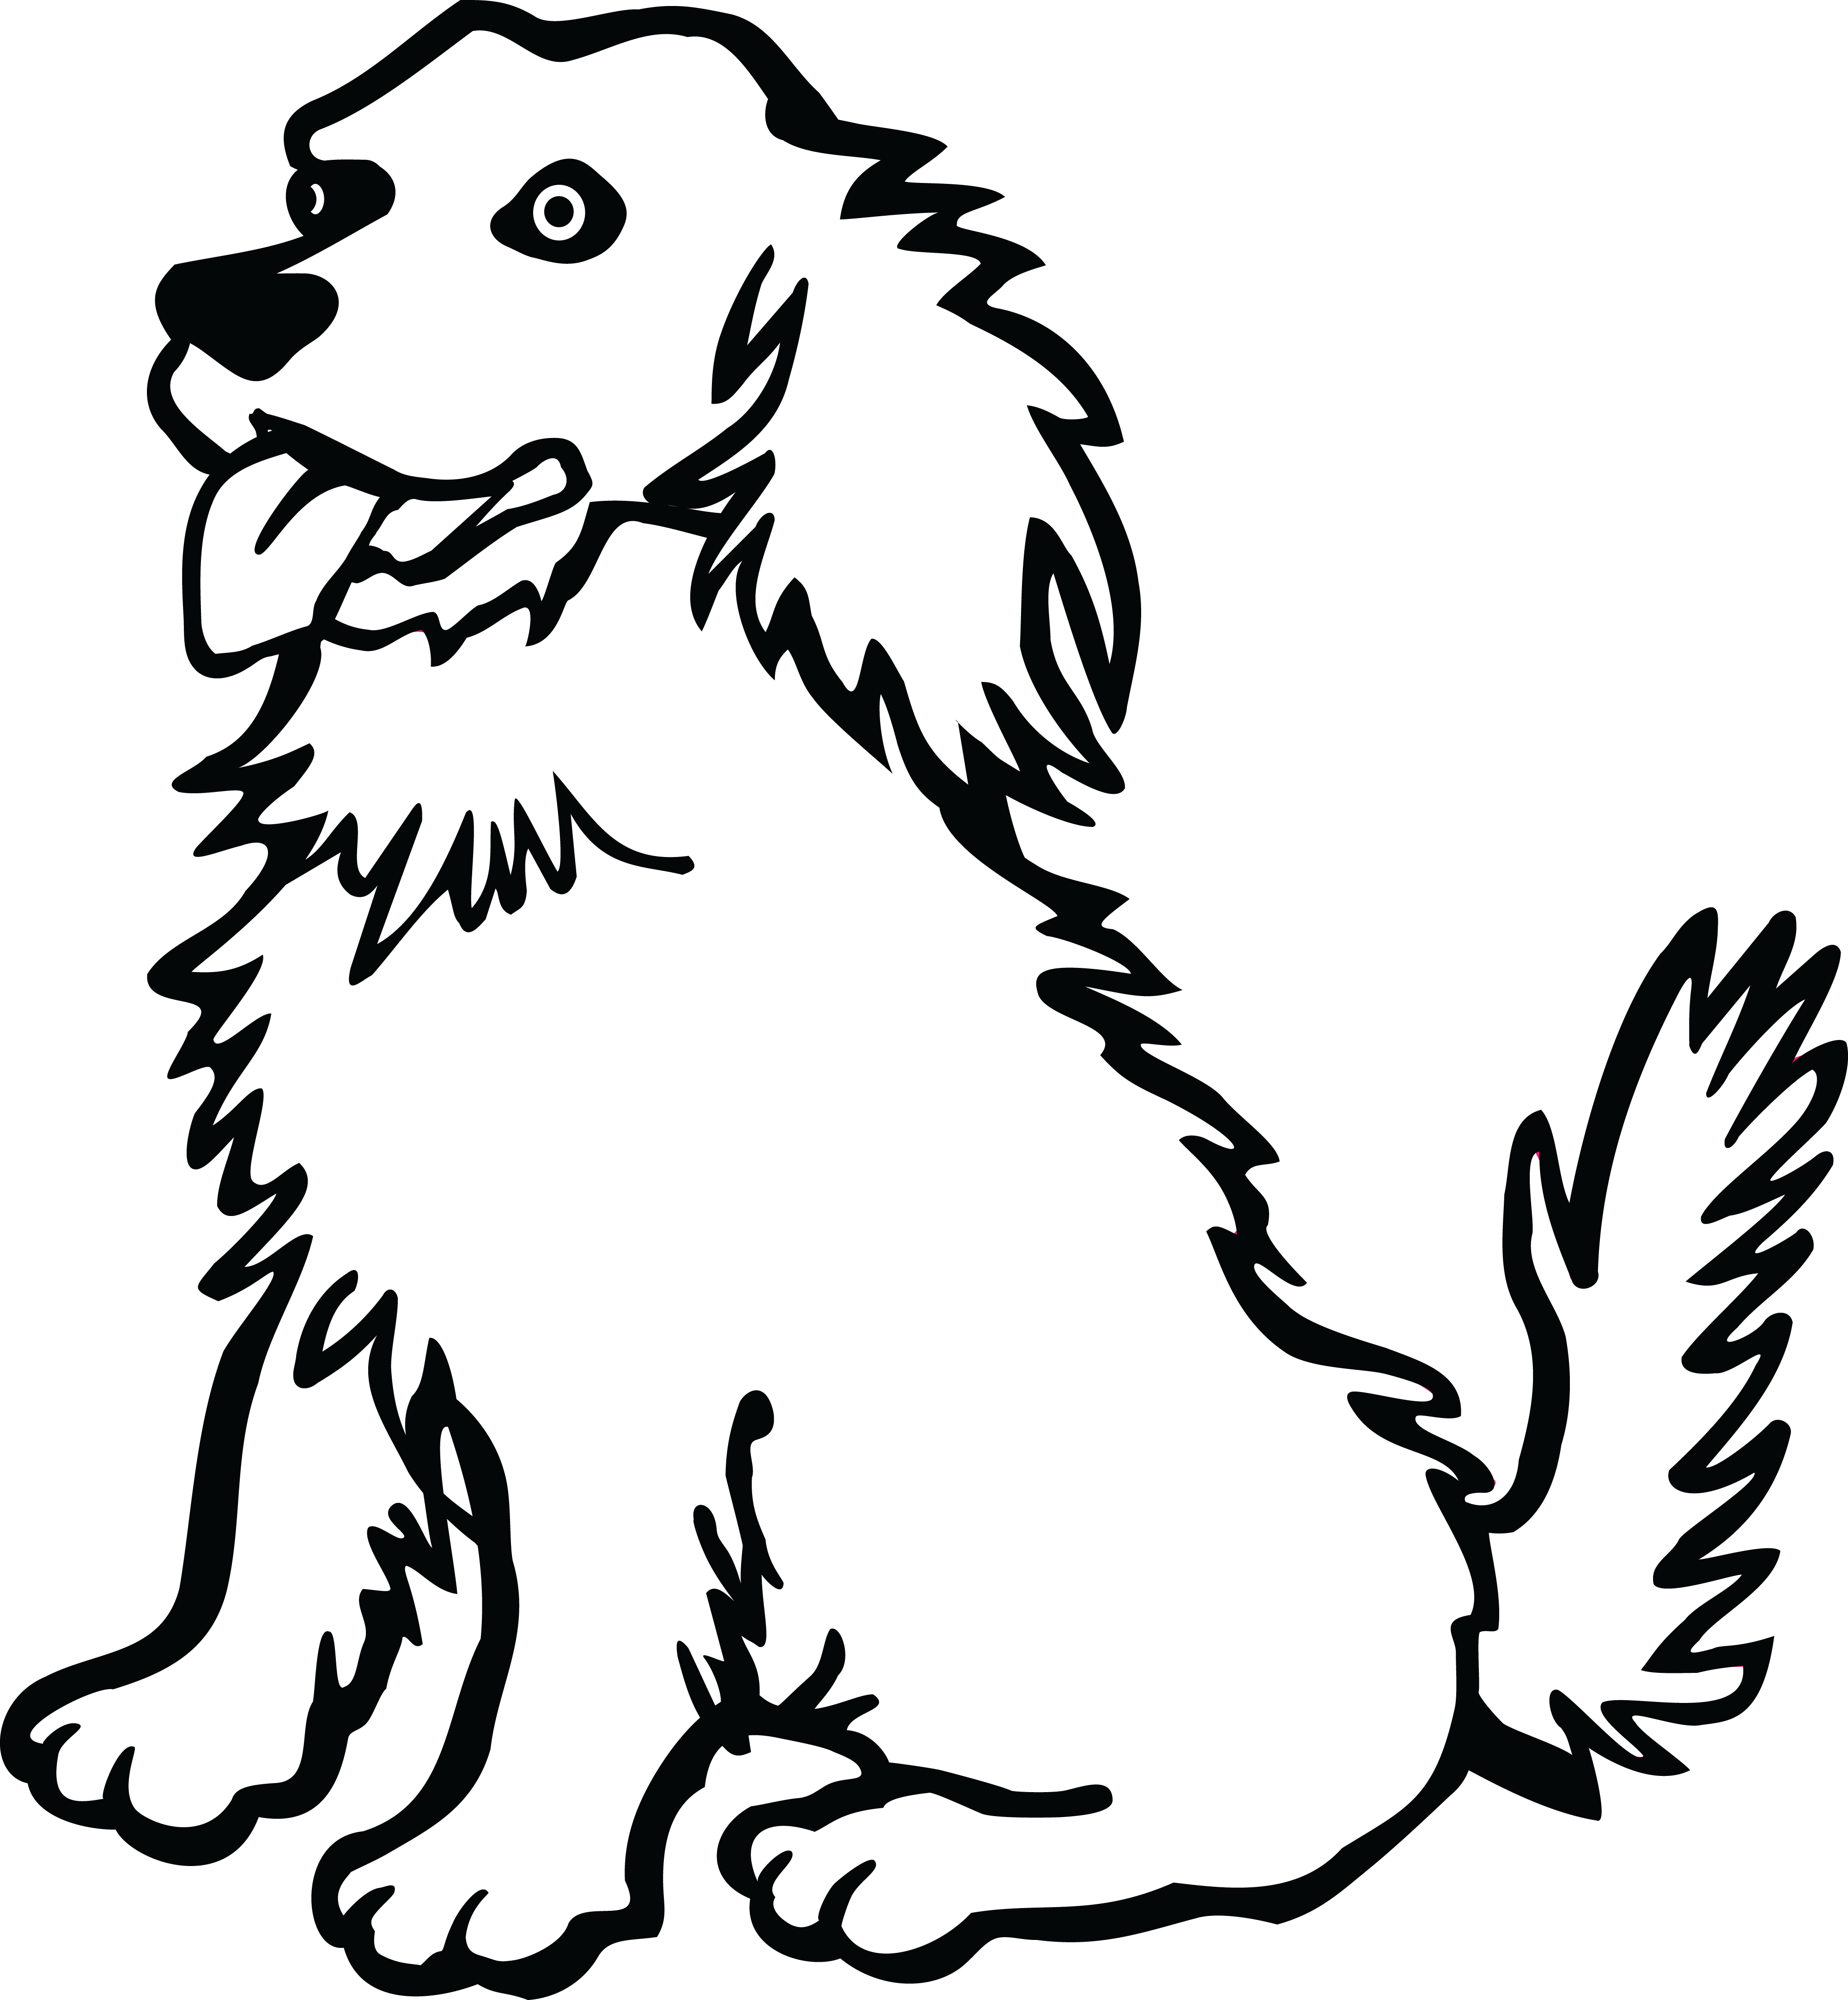 Free clipart of a dog 00011485 free black and white png of dogs